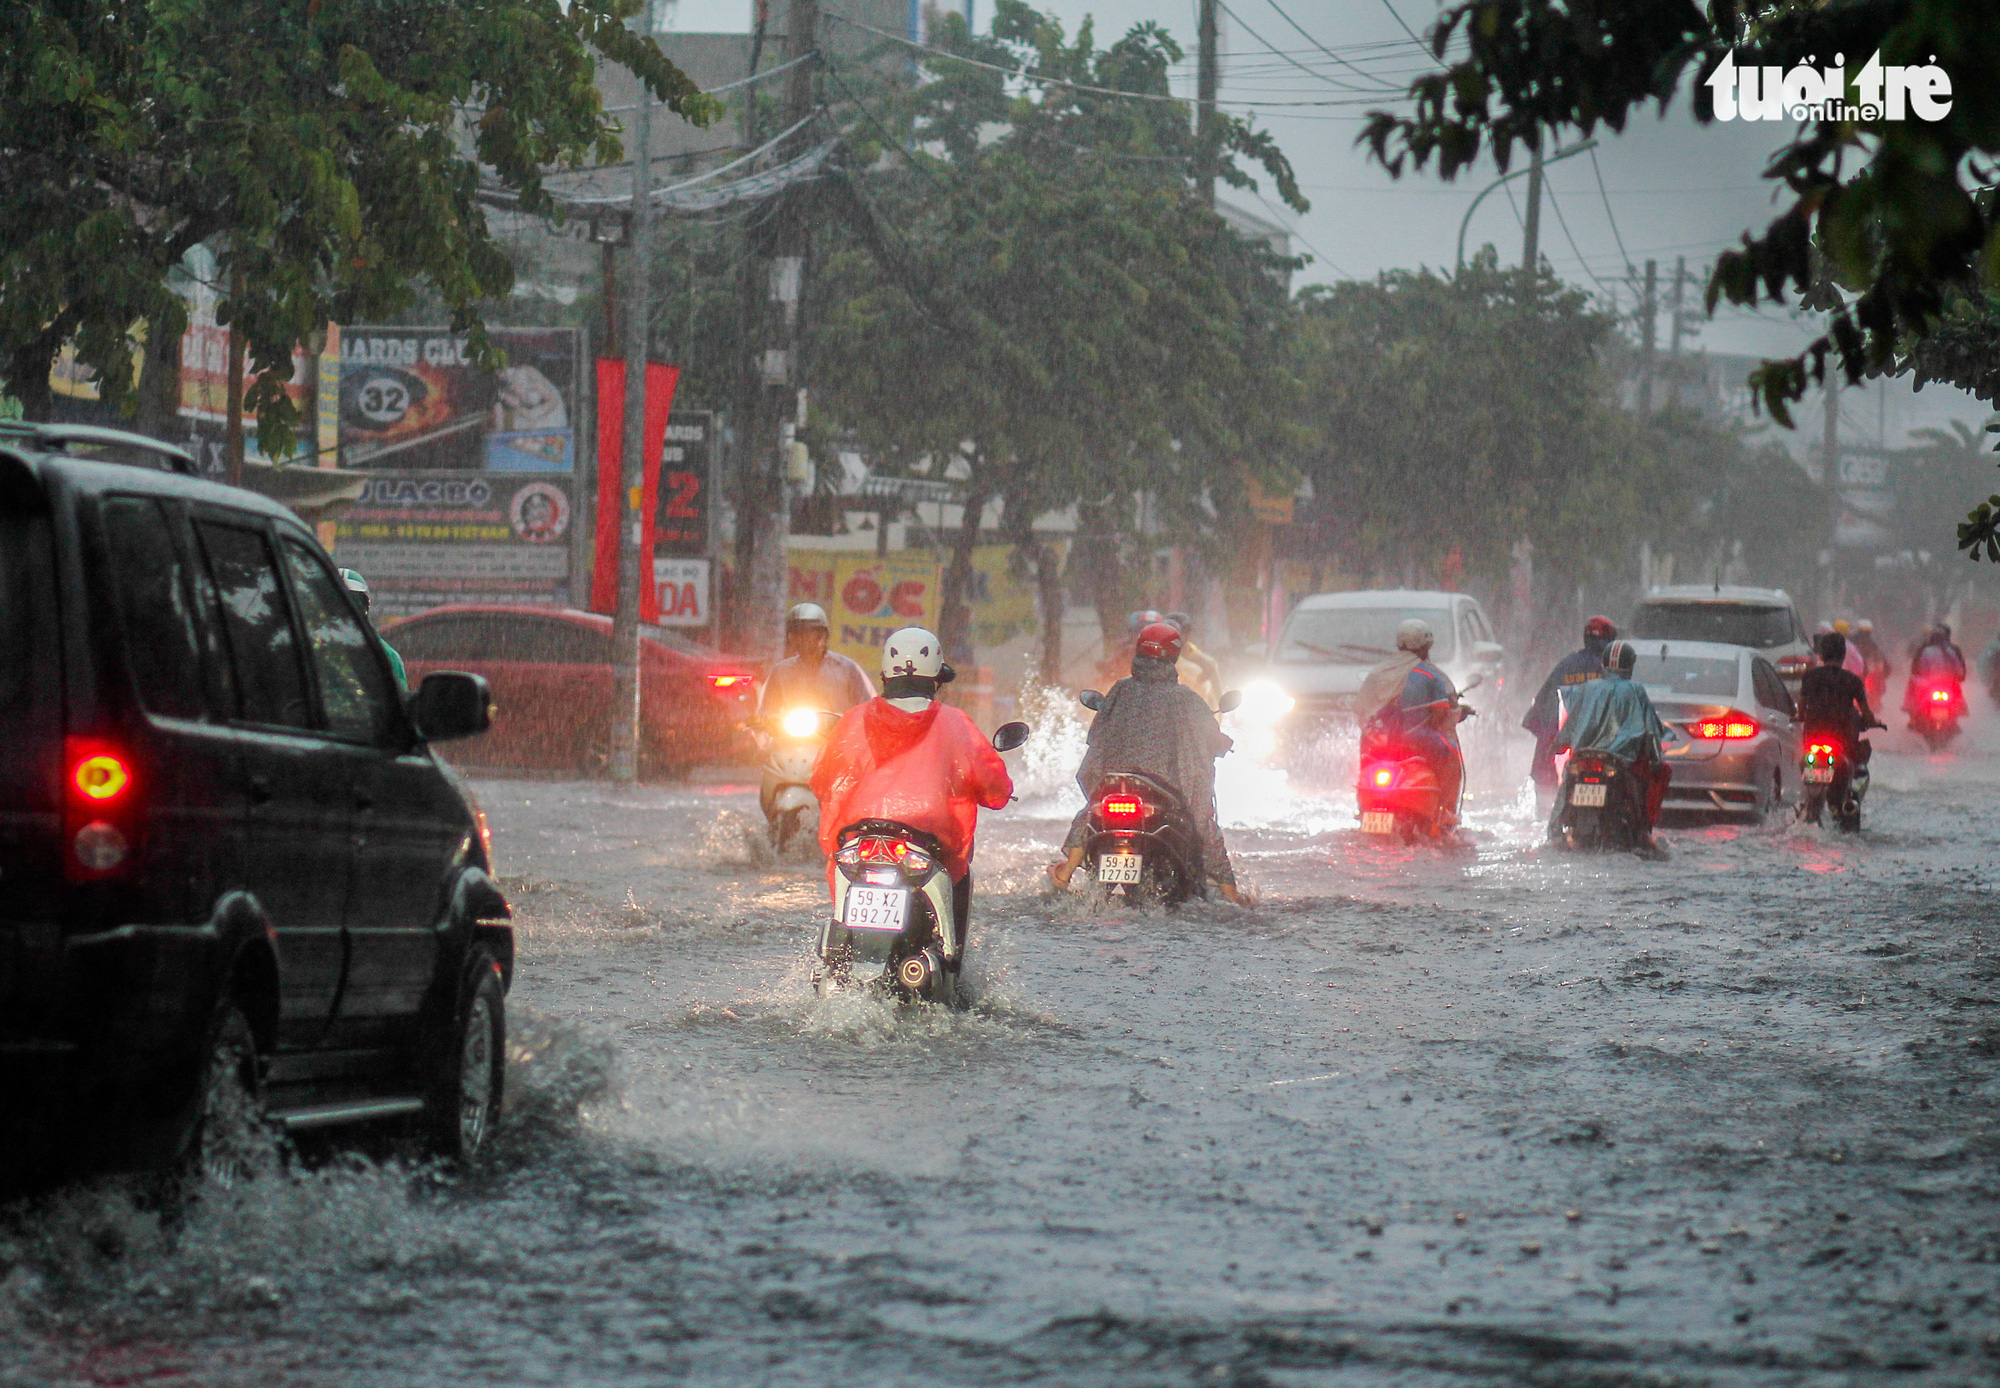 Commuters travel on a flooded street after heavy rain in Ho Chi Minh City, Vietnam September 6, 2020. Photo: Chau Tuan / Tuoi Tre